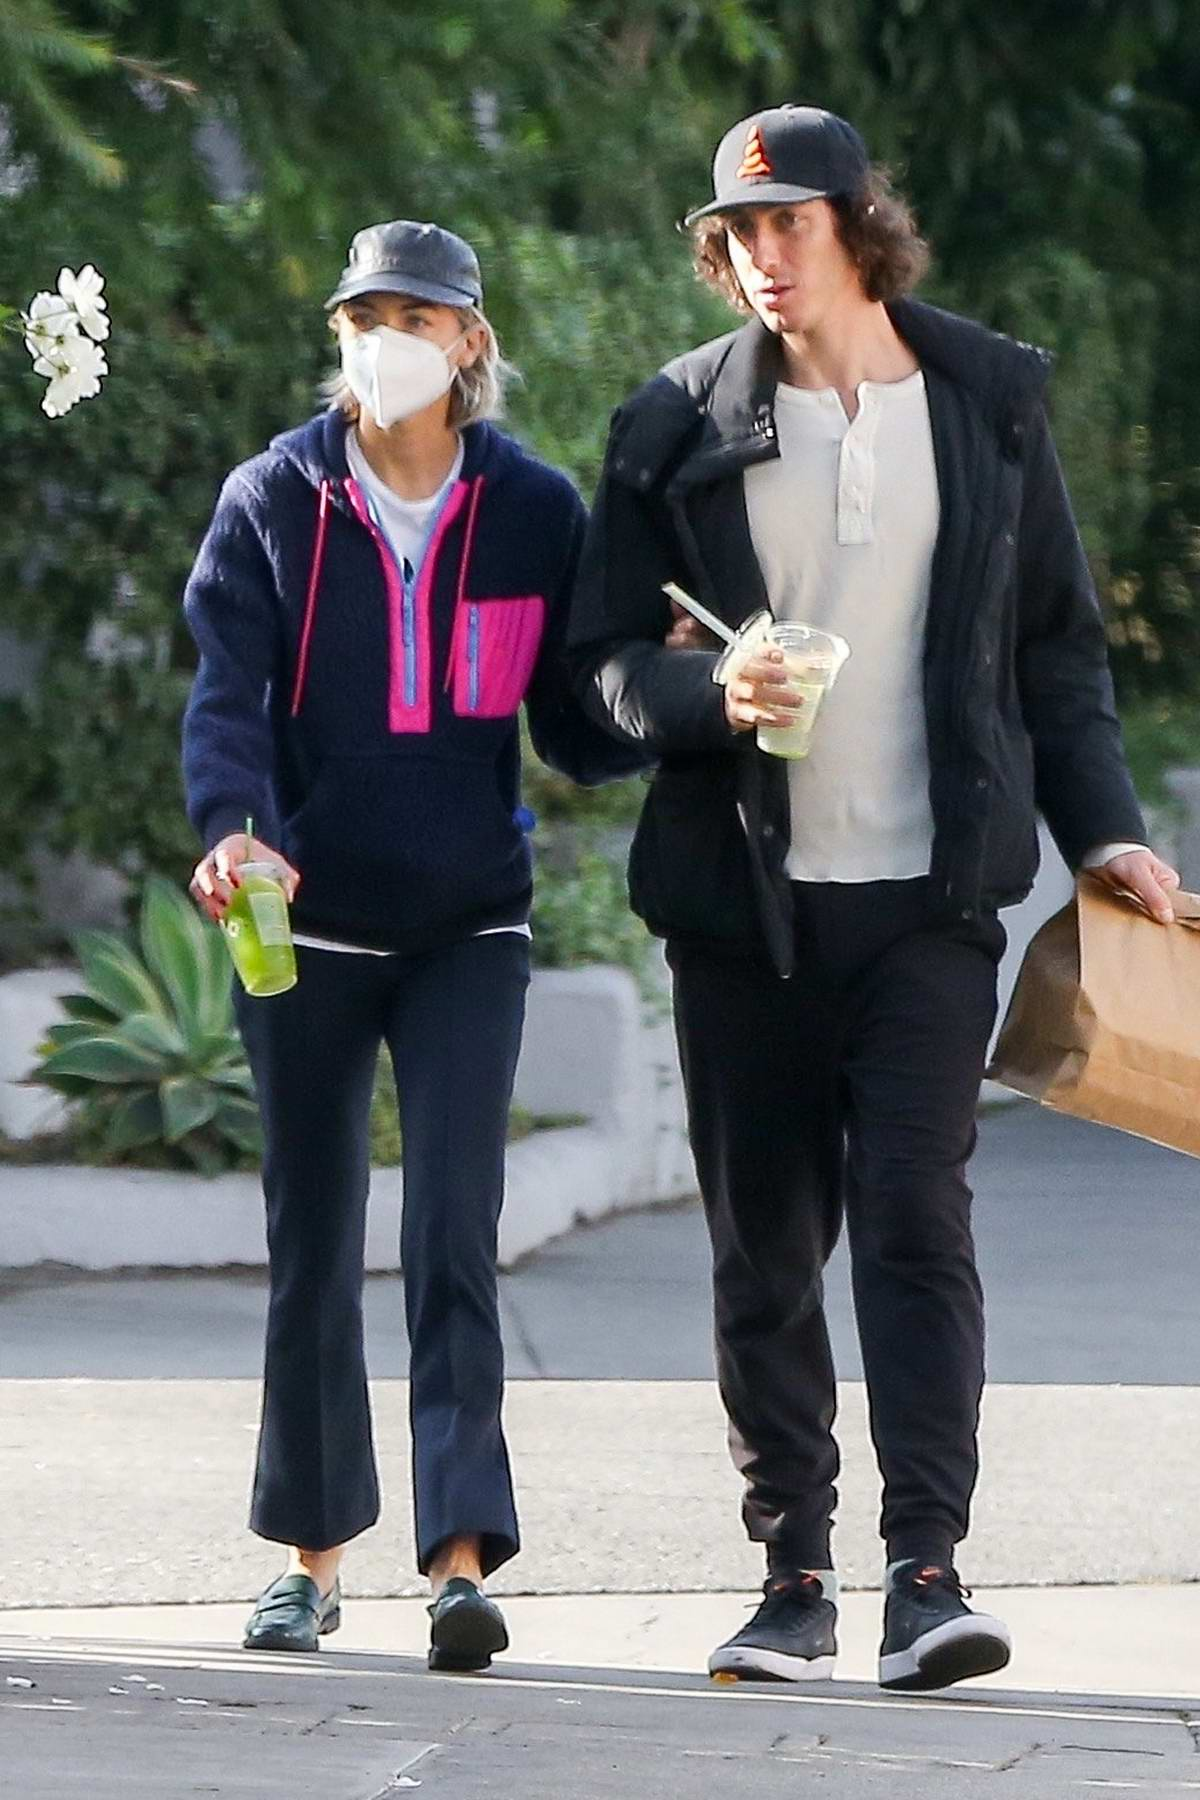 Jaime King steps out holding hands with a mystery man in Los Angeles